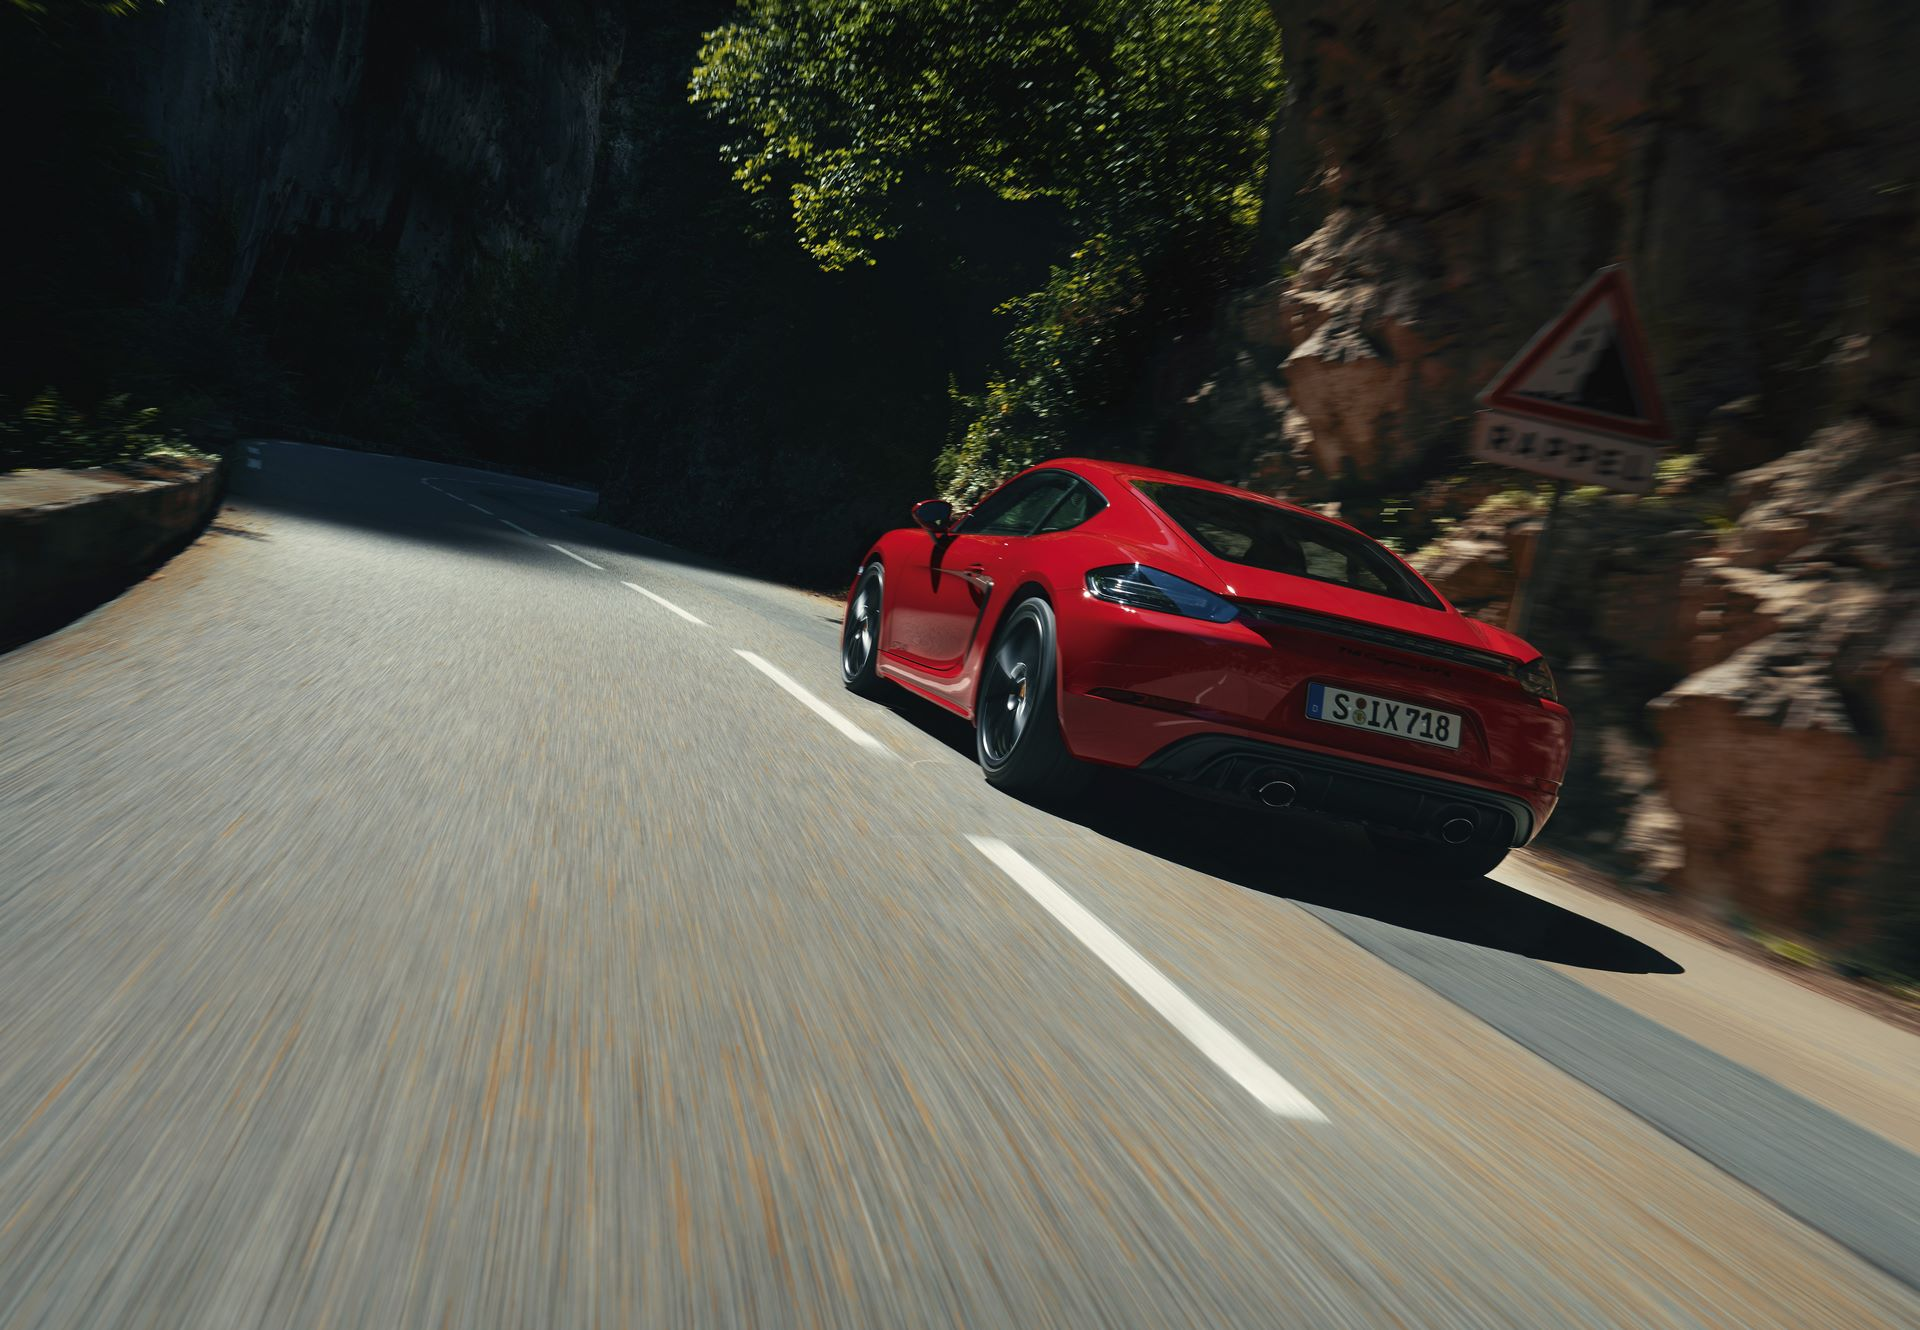 Porsche-718-Boxster-GTS-4.0-and-718-Cayman-GTS-4.0-2